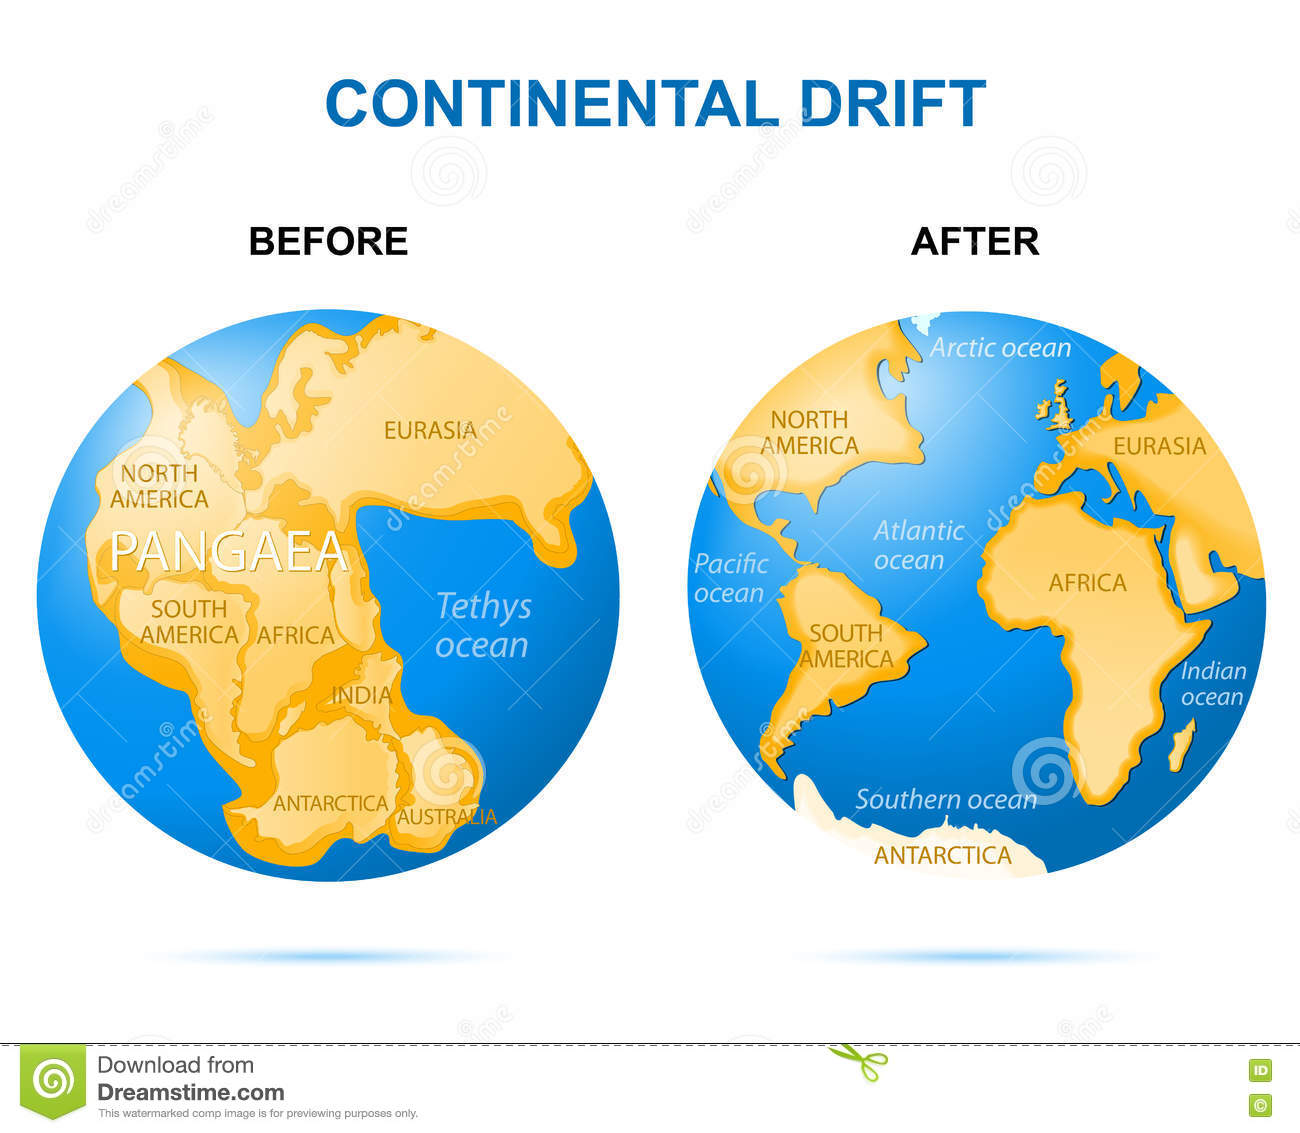 carbon dating continental drift Continental drift - duration: 11:57 mike sammartano 853,250 views 11:57  half-life and carbon dating | nuclear chemistry | chemistry.